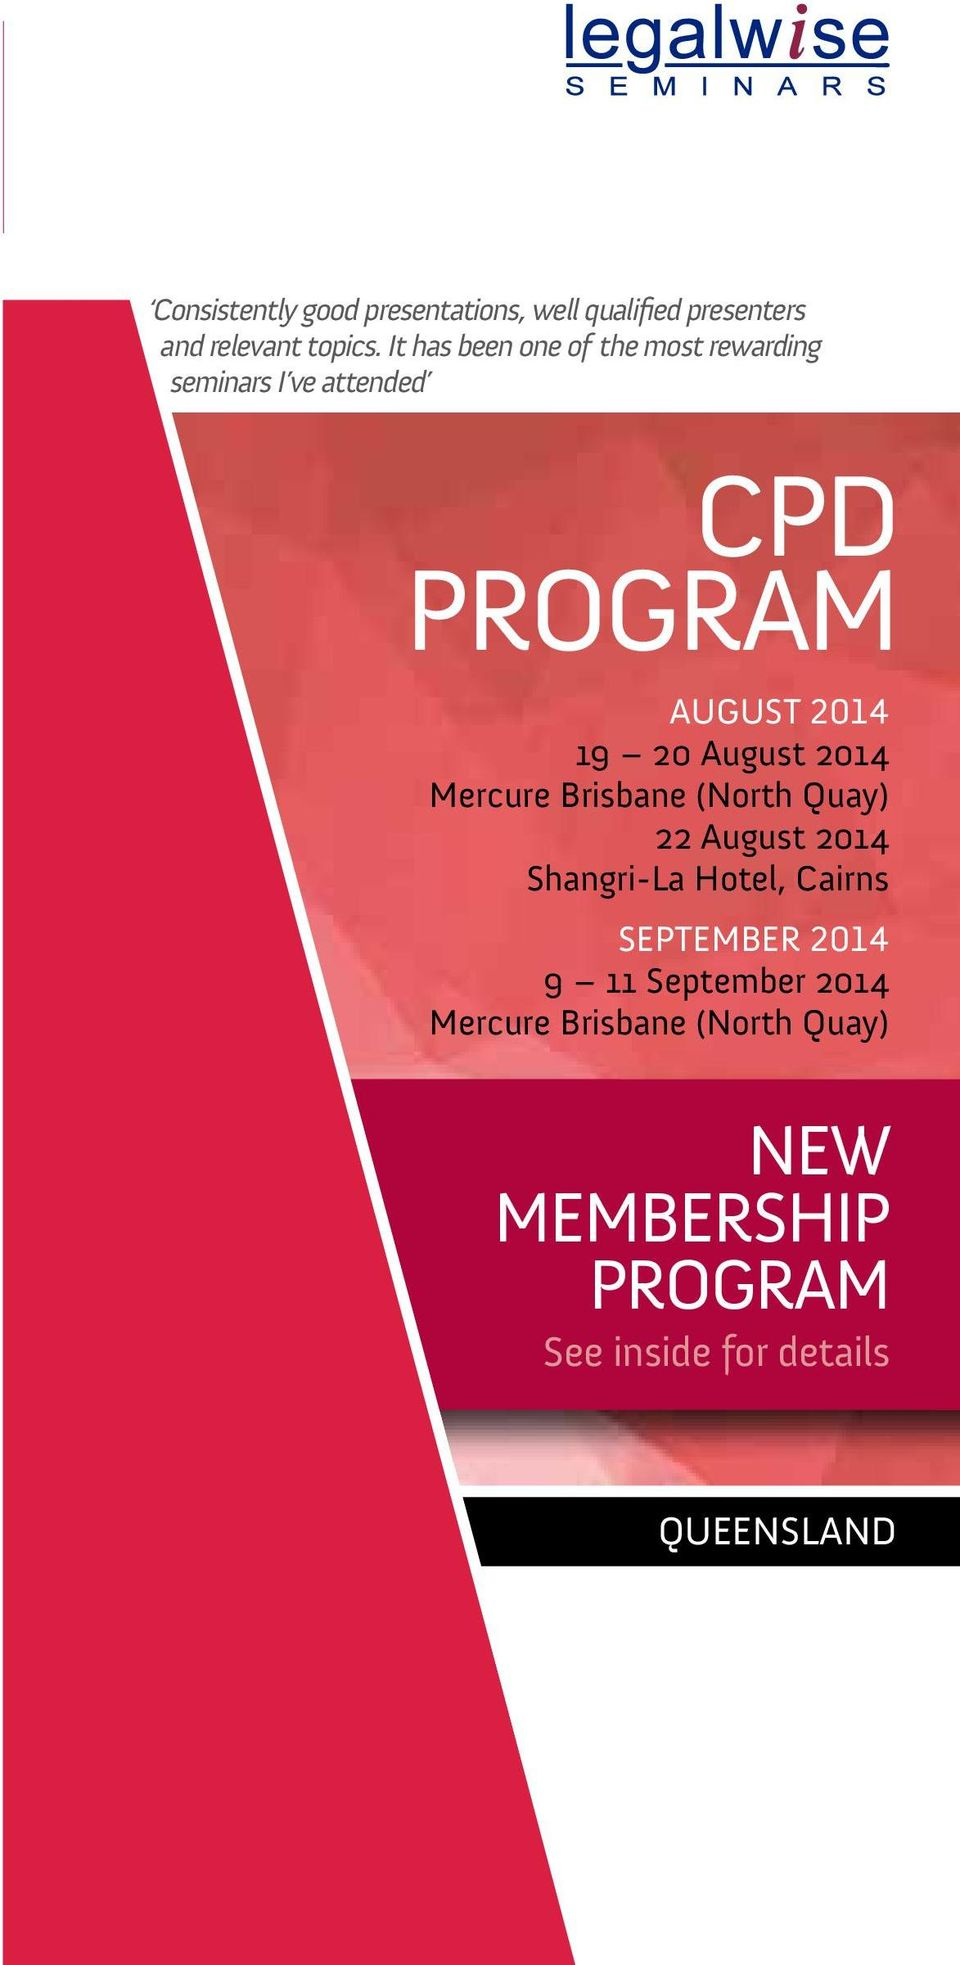 August 201 Mercure Brisbane (North Quay) 22 August 201 Shangri-La Hotel, Cairns SEPTEMBER